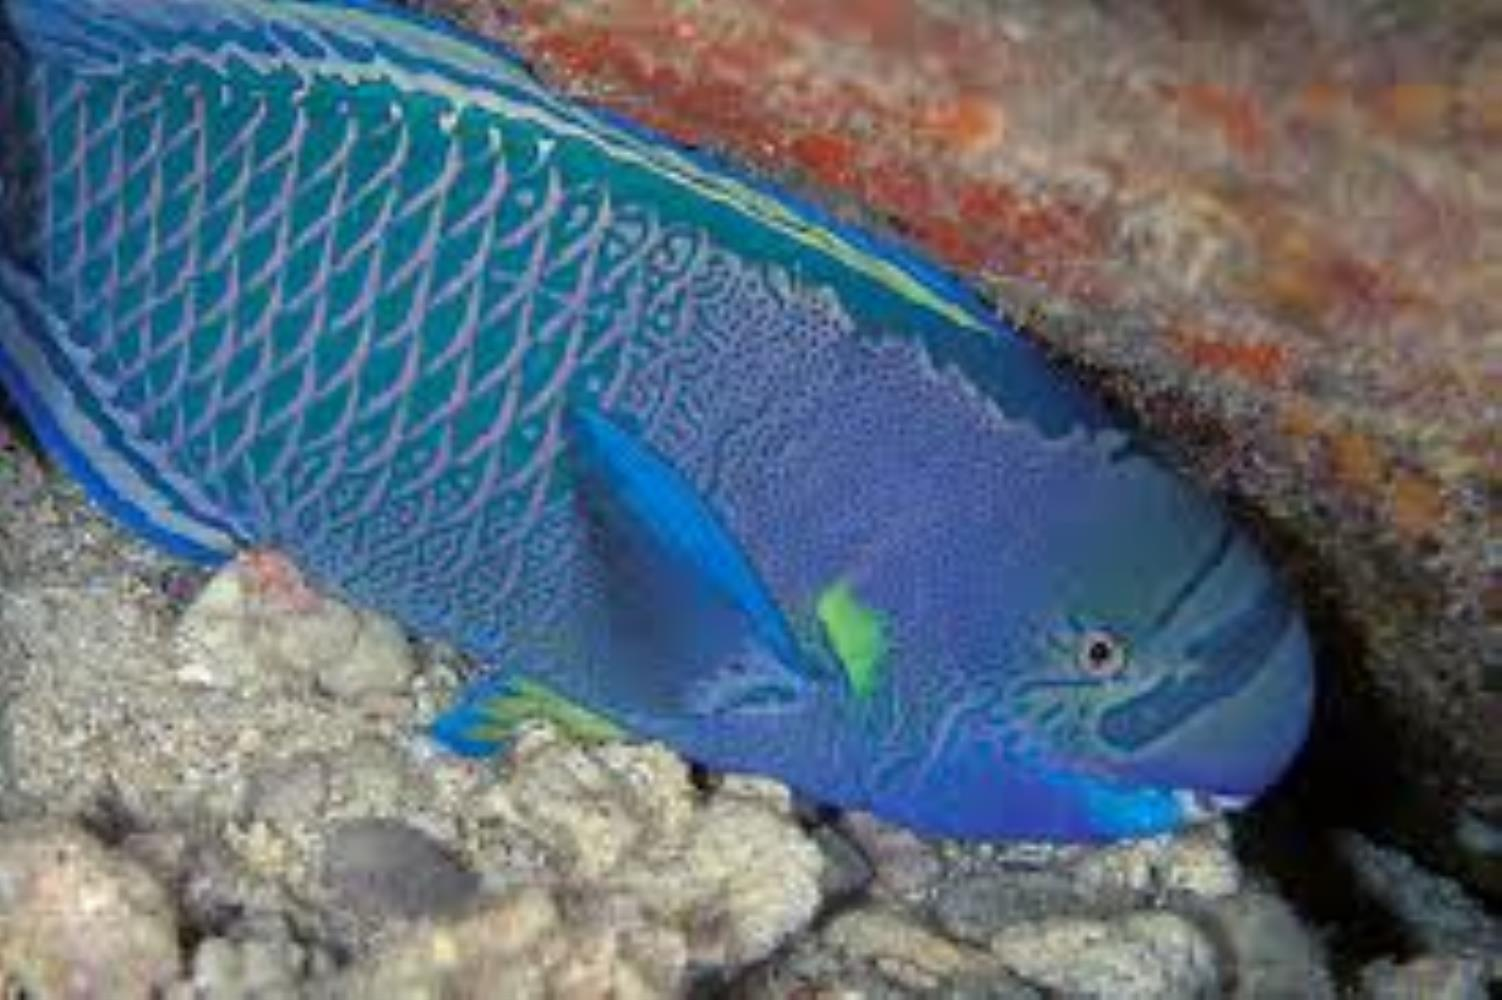 Spectacled parrotfish information and picture sea animals for Parrot fish facts